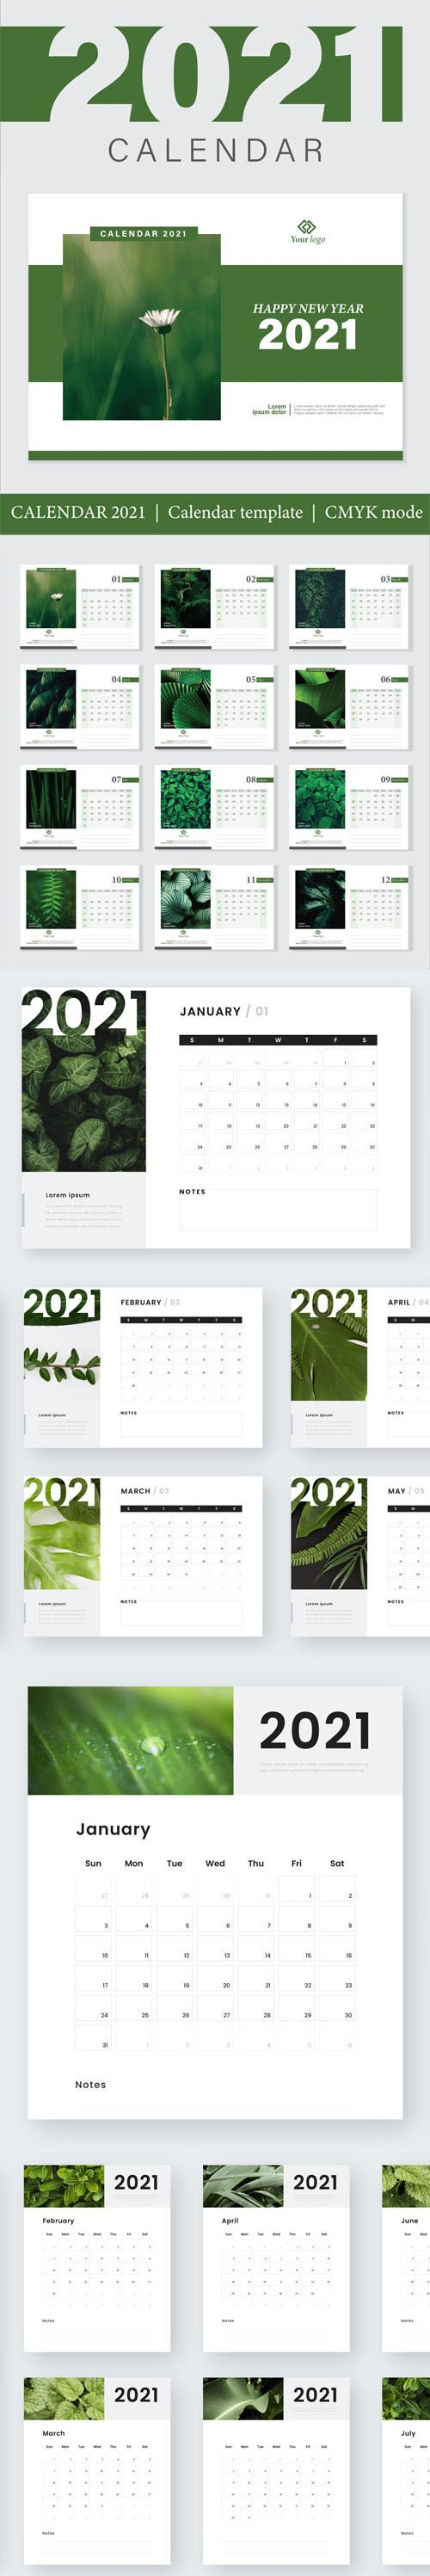 Modern Abstract New Year 2021 Calendars Vector Templates in Green